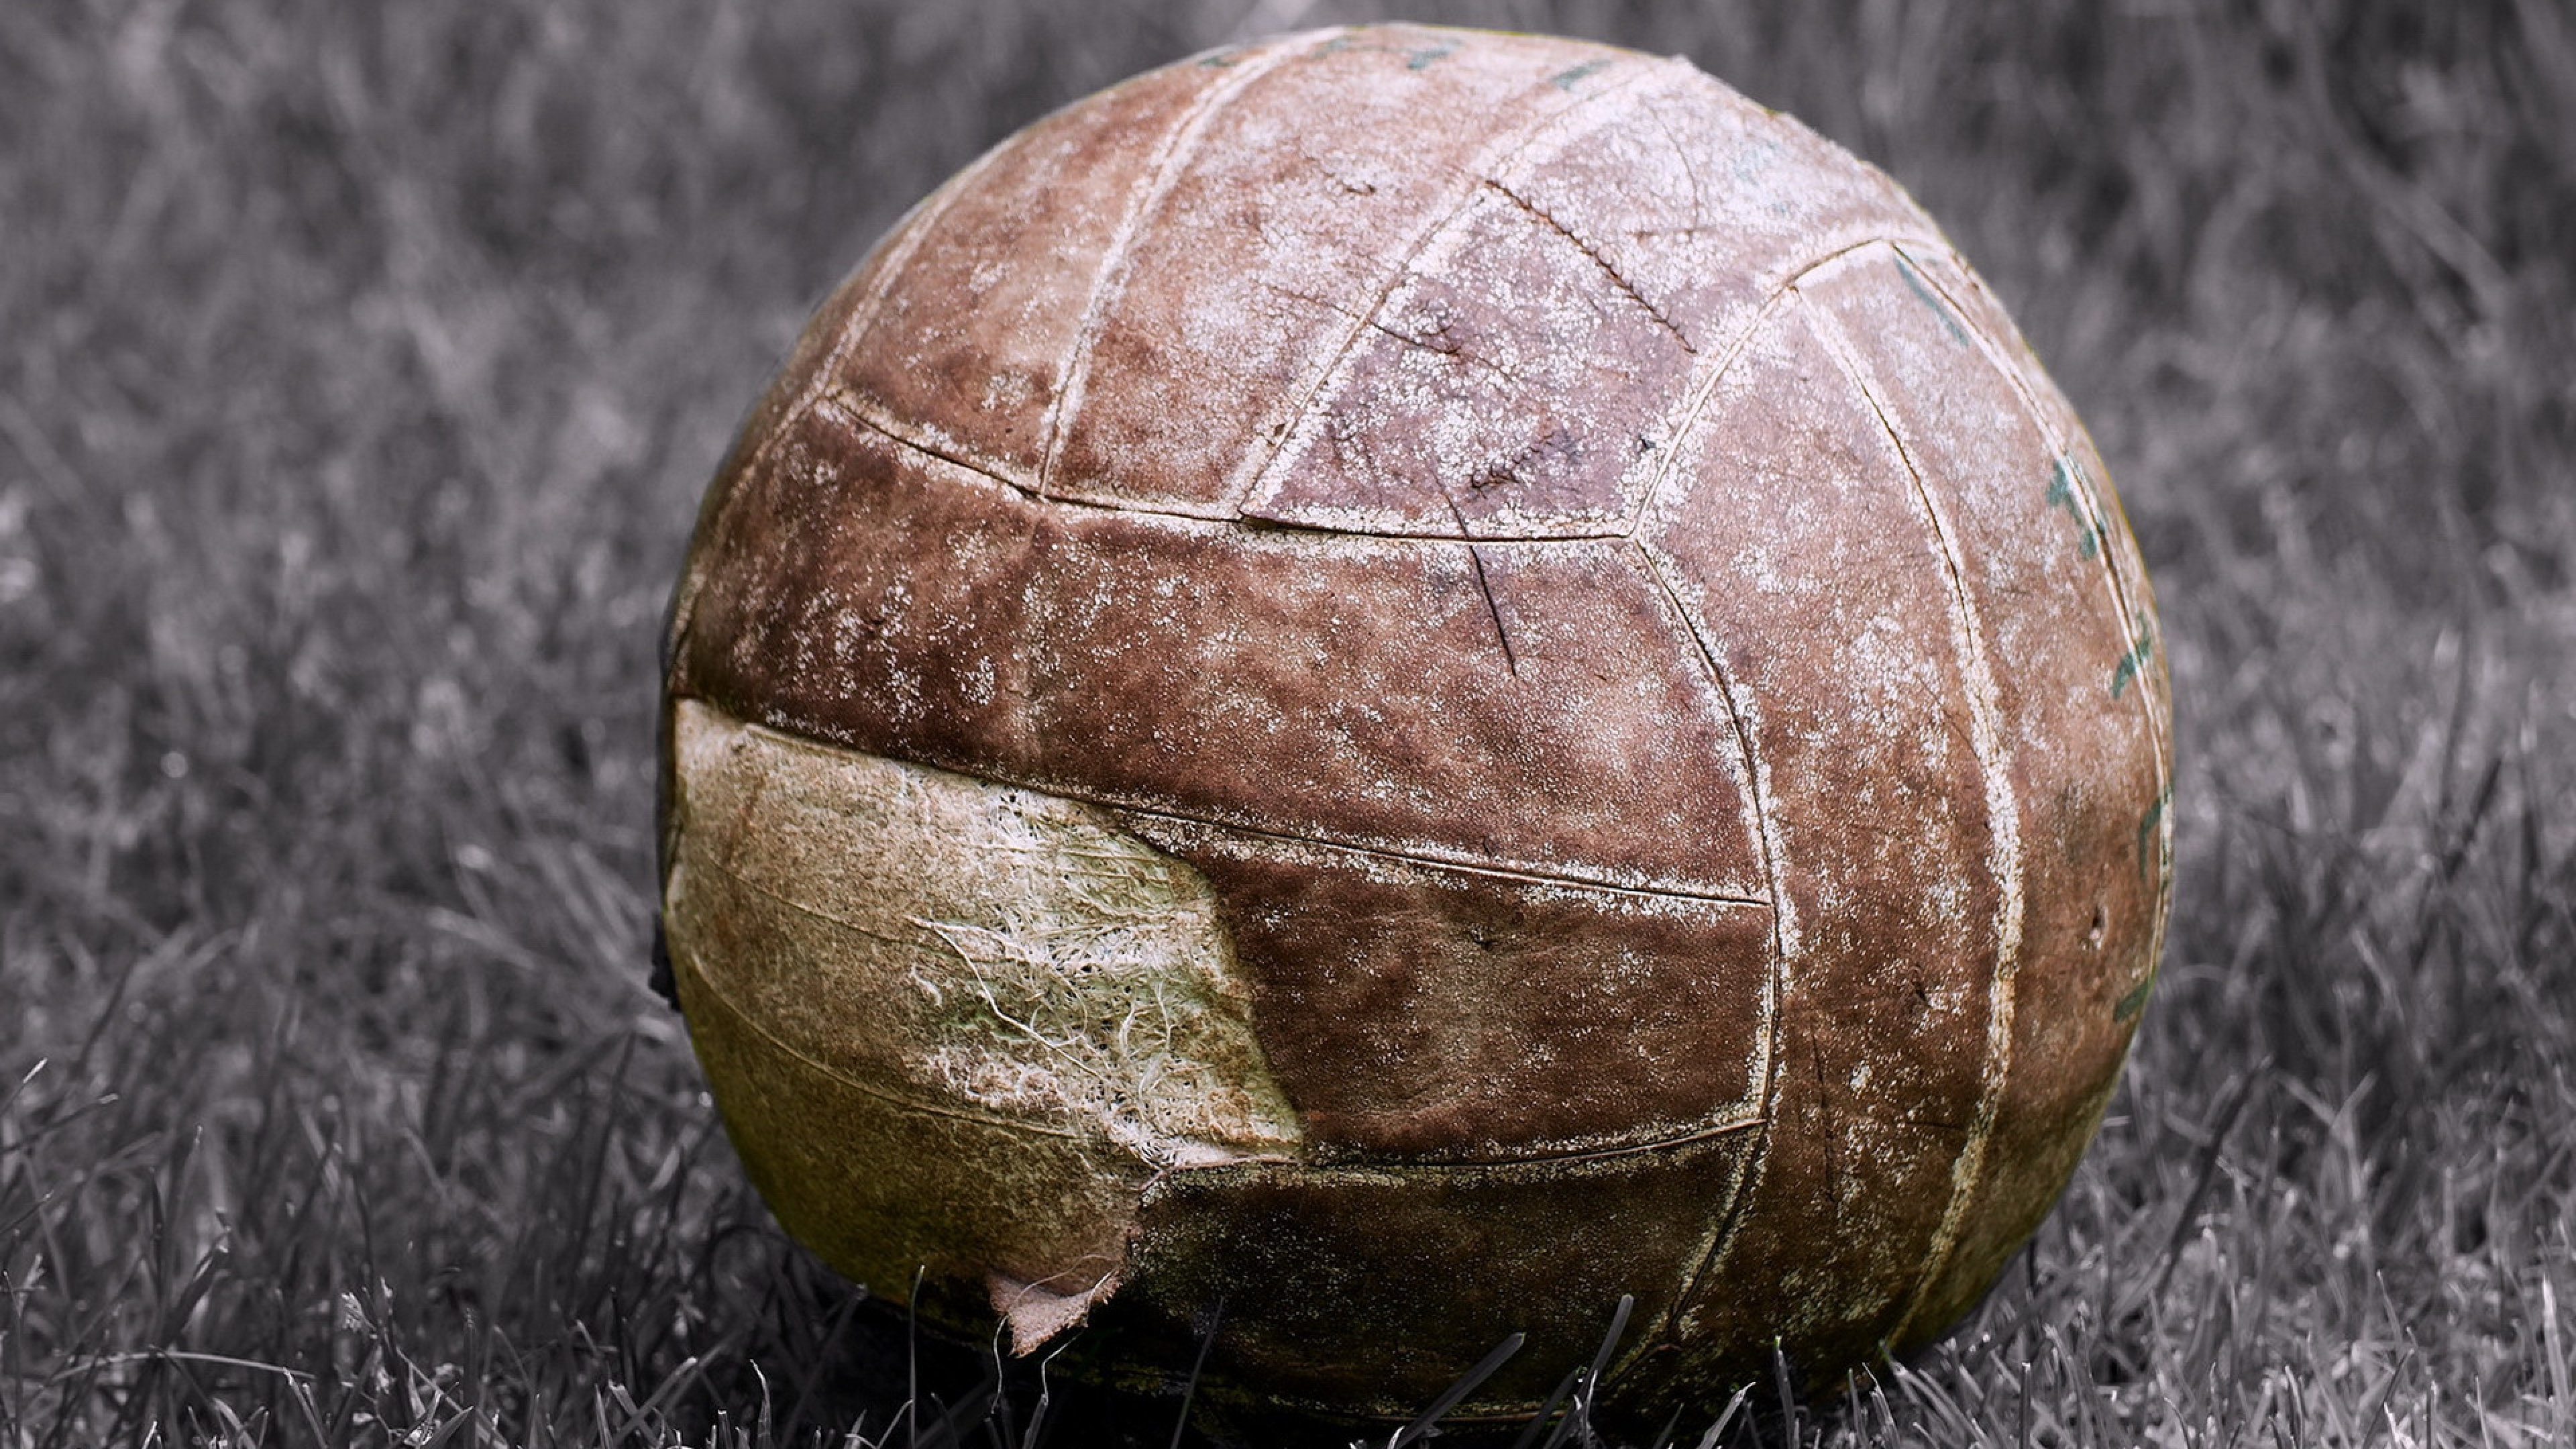 old ragged football 1538786745 - Old Ragged Football - sports wallpapers, football wallpapers